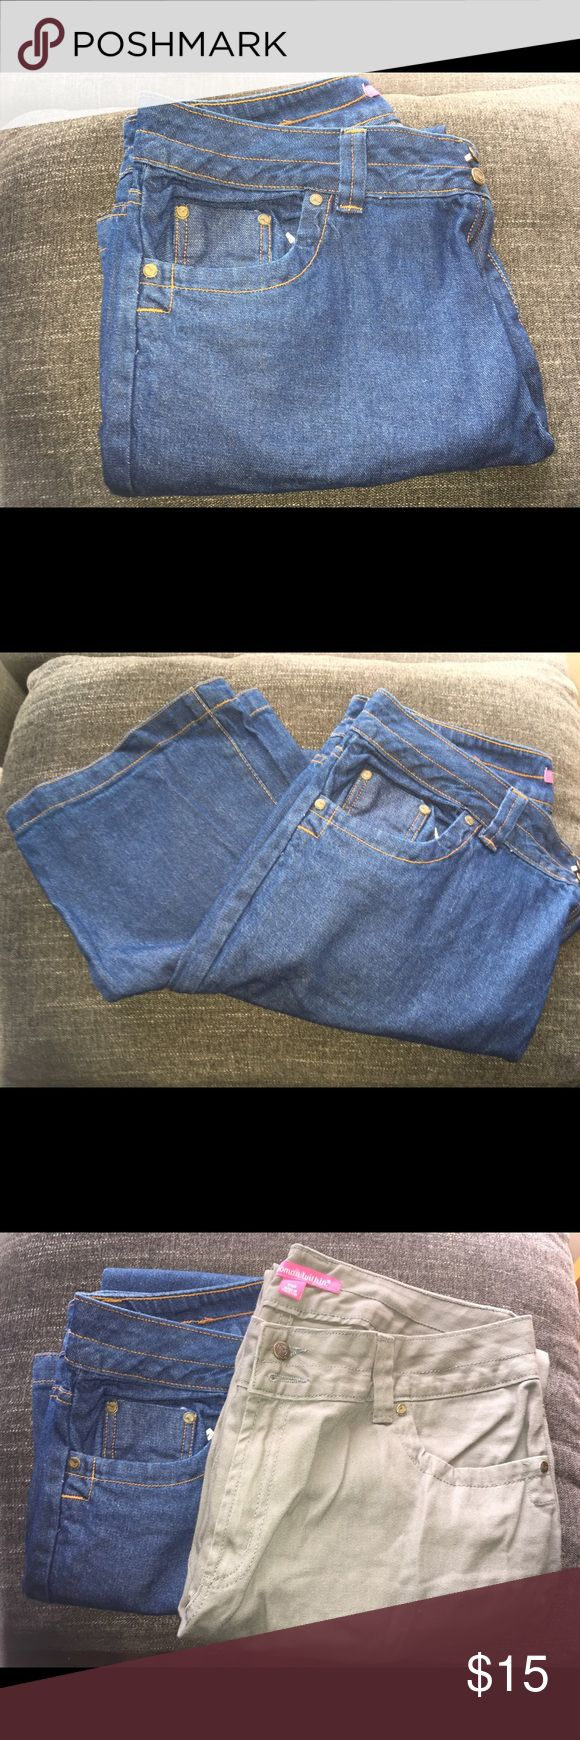 Wide Leg Pants (2 for $15) 12W Jeans, fatigue and denim, 2 jeans for $15. Jeans Flare & Wide Leg